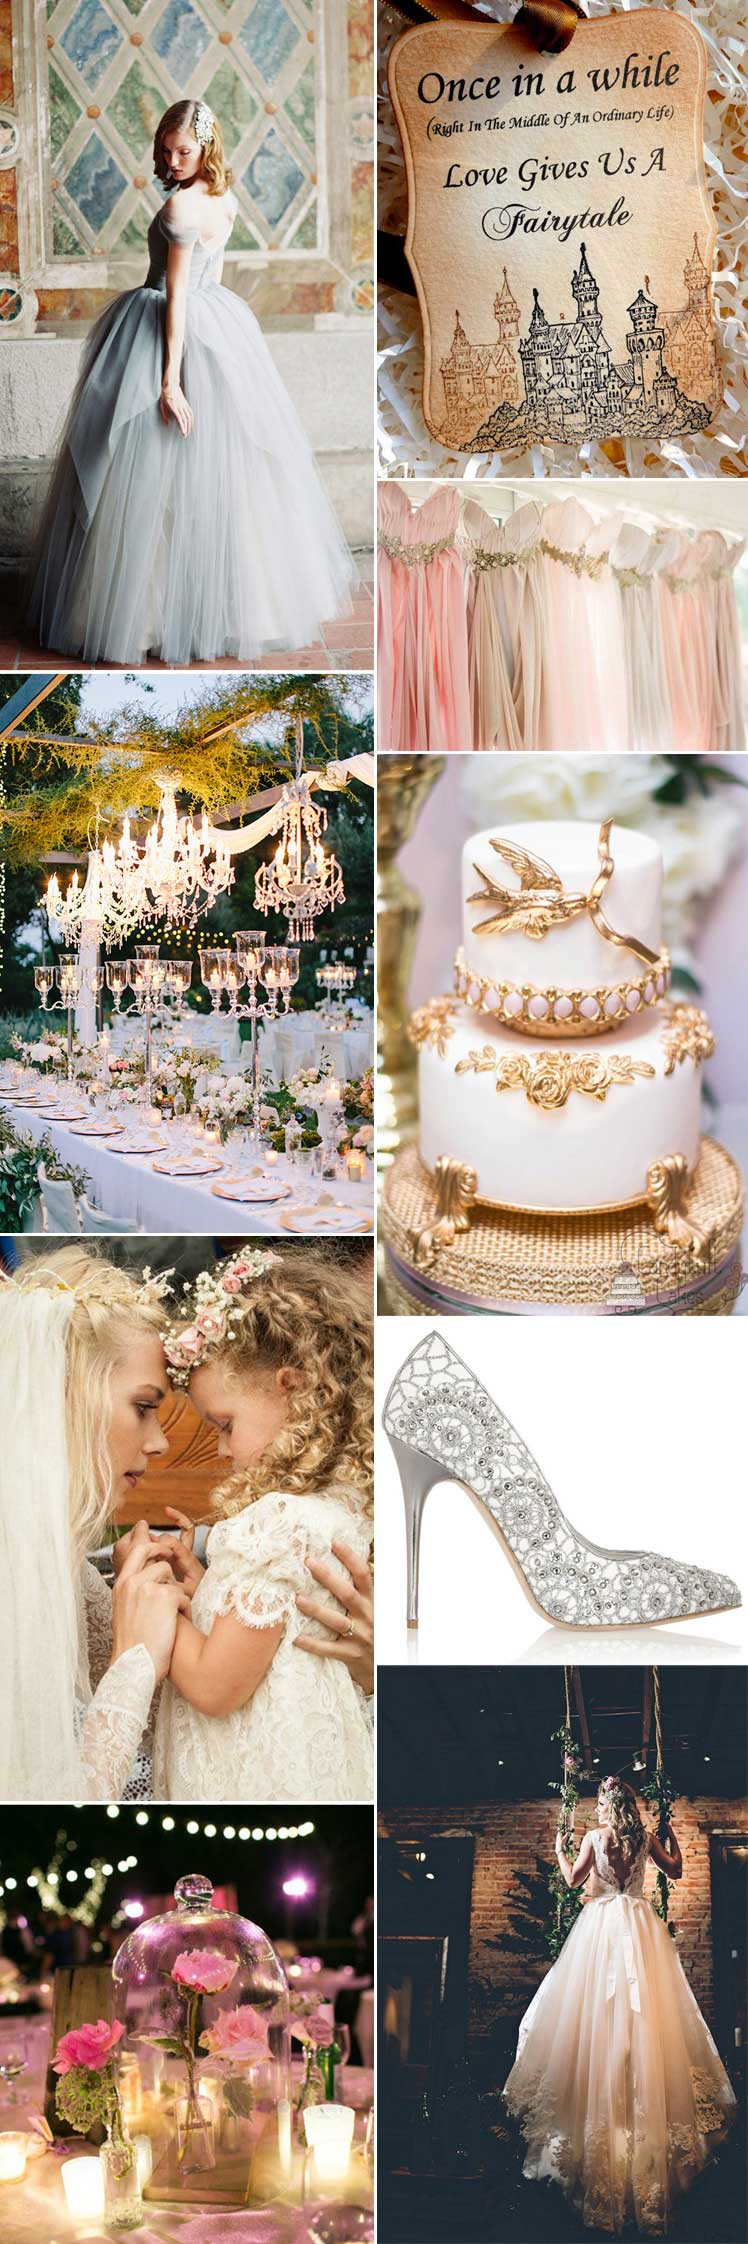 beatuiful fairytale wedding inspiration